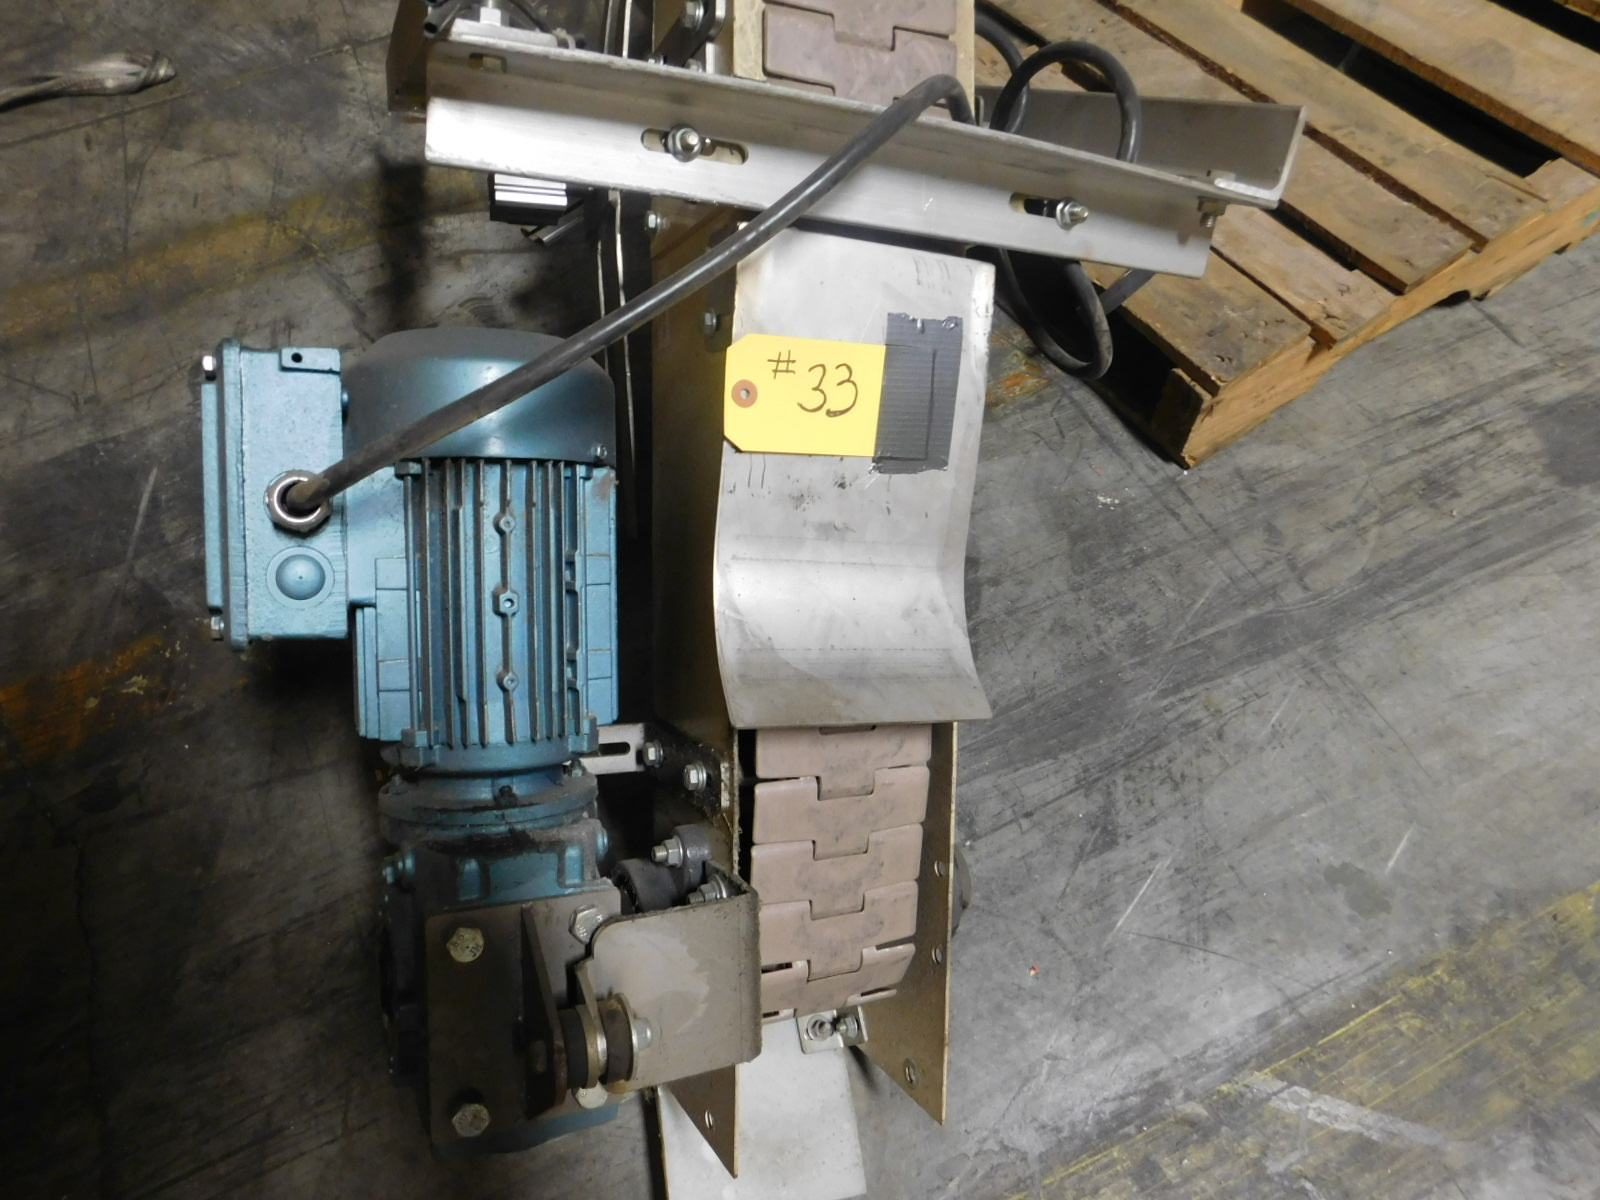 Lot 33 - Flex Turner conveyor Motorized conveyor,4'x 180 degree turn conveyor :equipment located at Clark